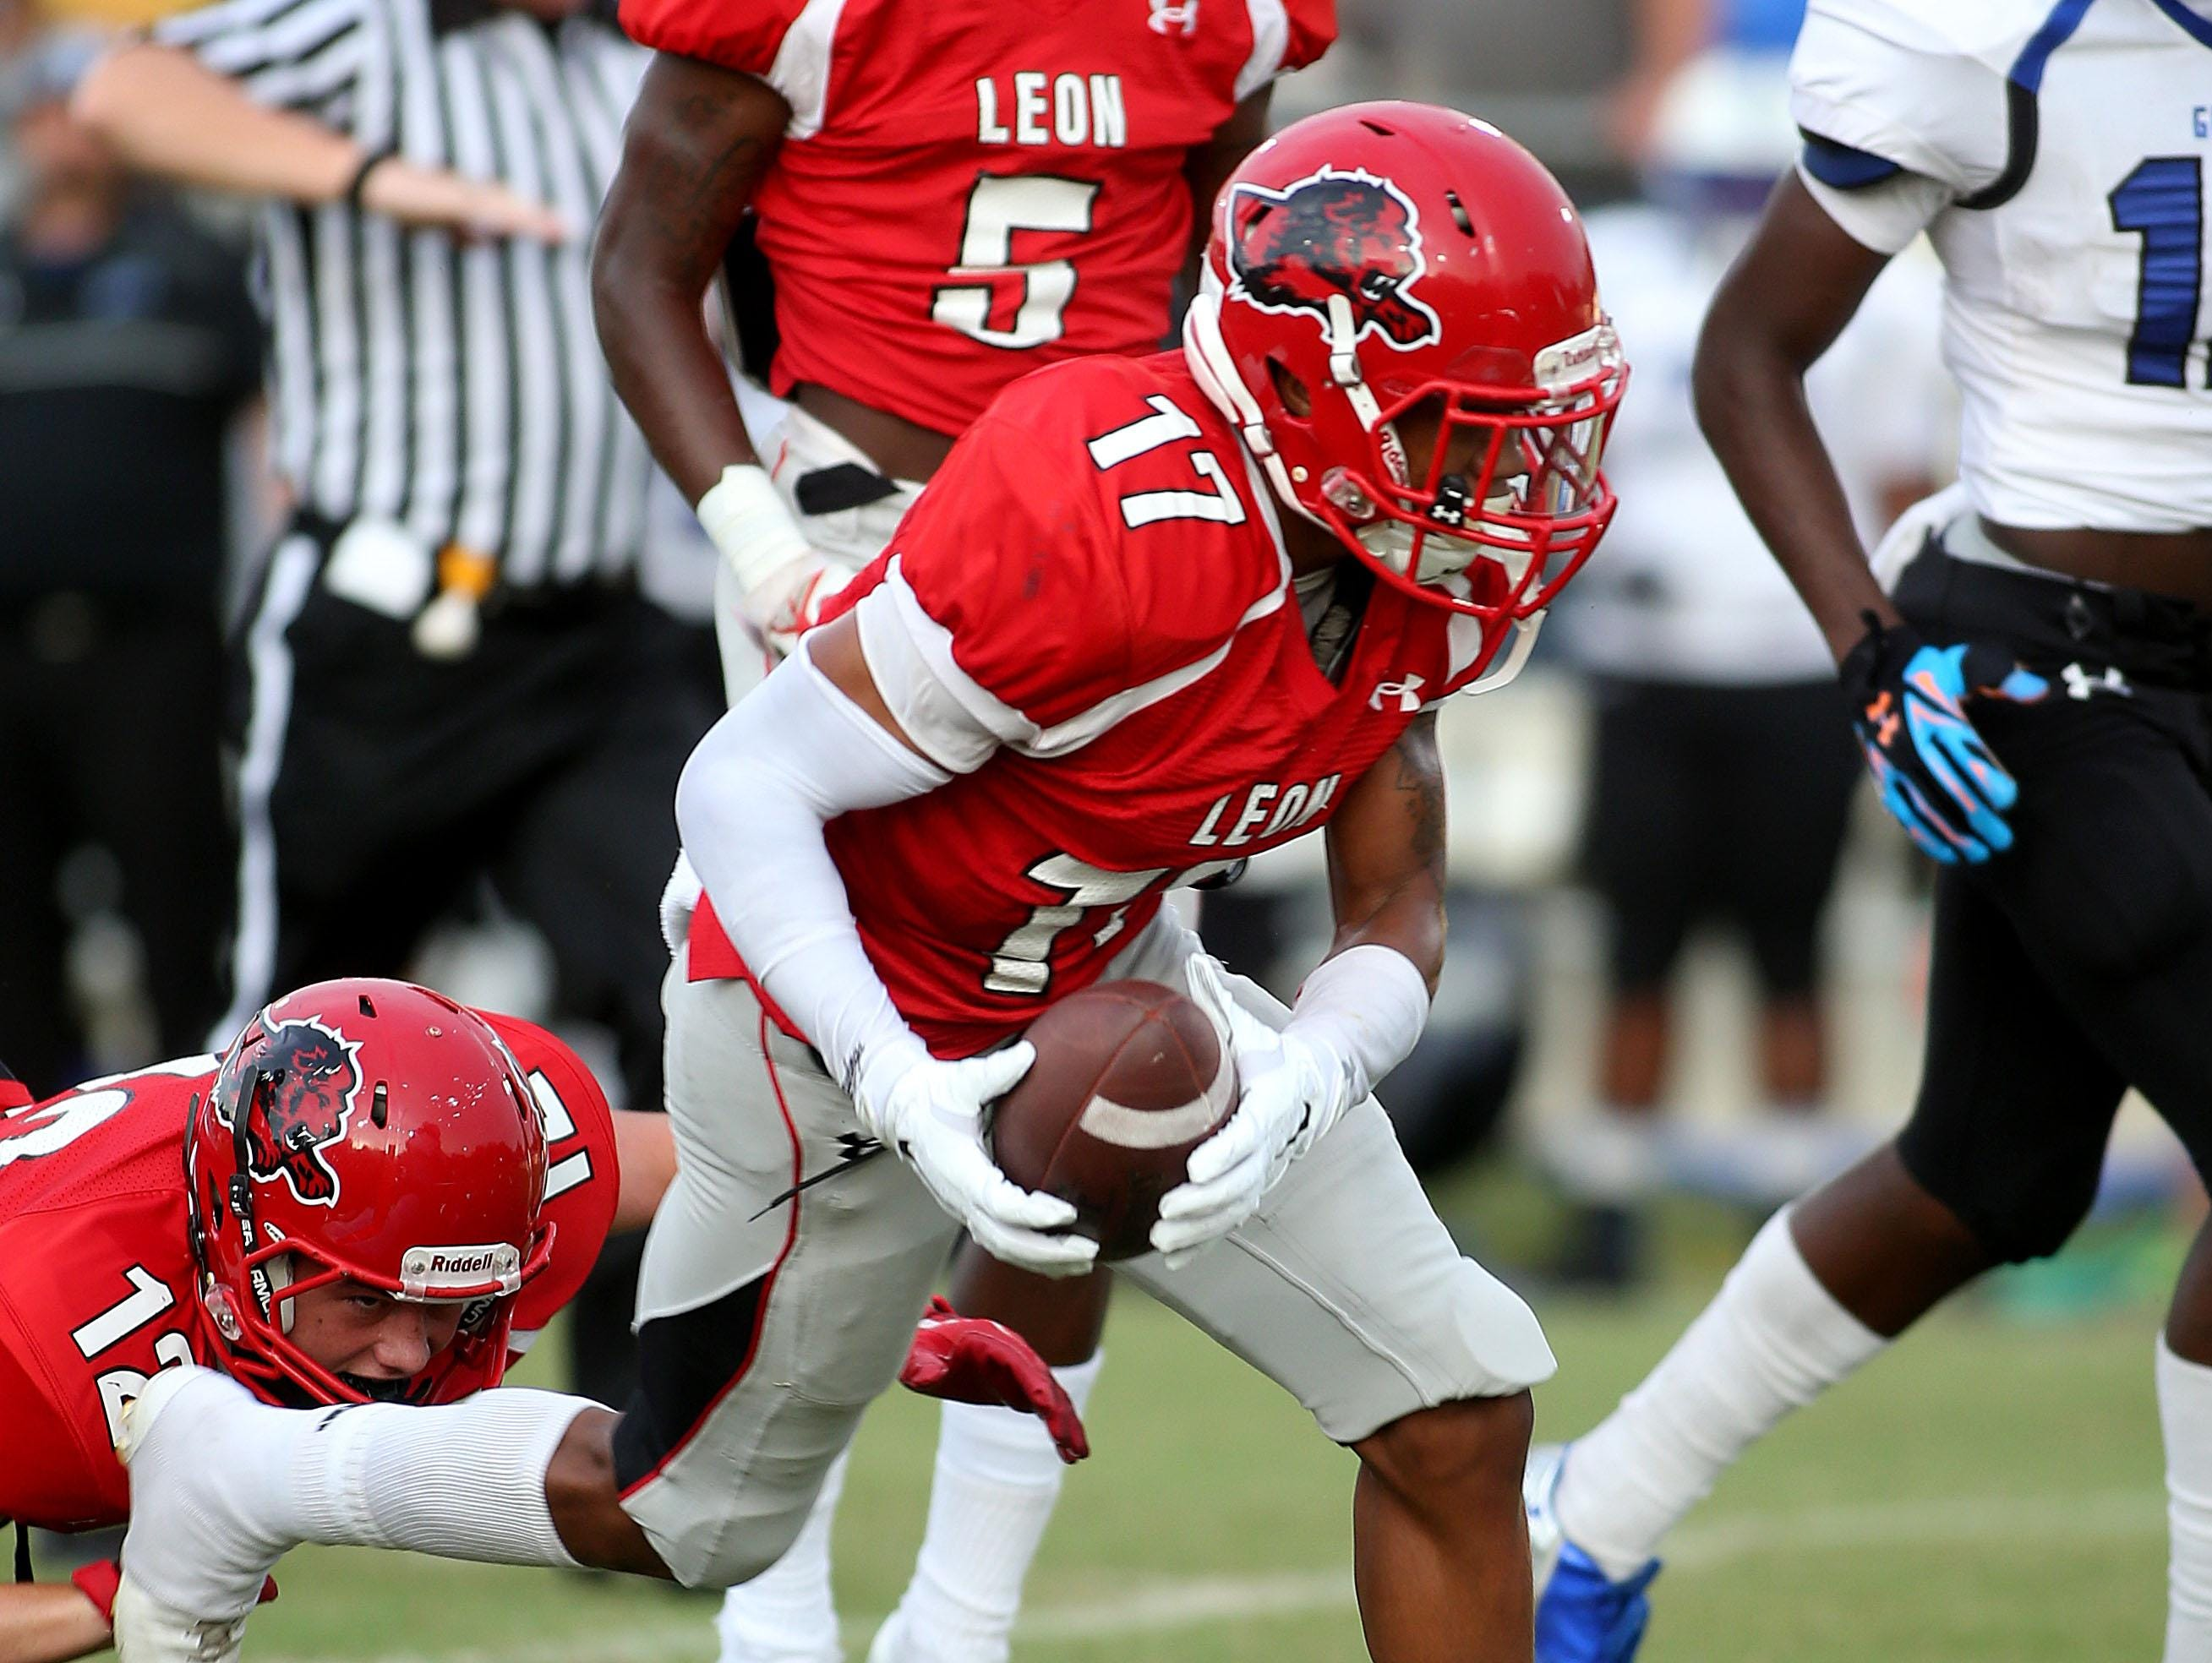 Leon's Damien Crumitie runs with the ball as the Godby Cougars roll past the Leon Lions at Gene Cox Stadium on Friday night.